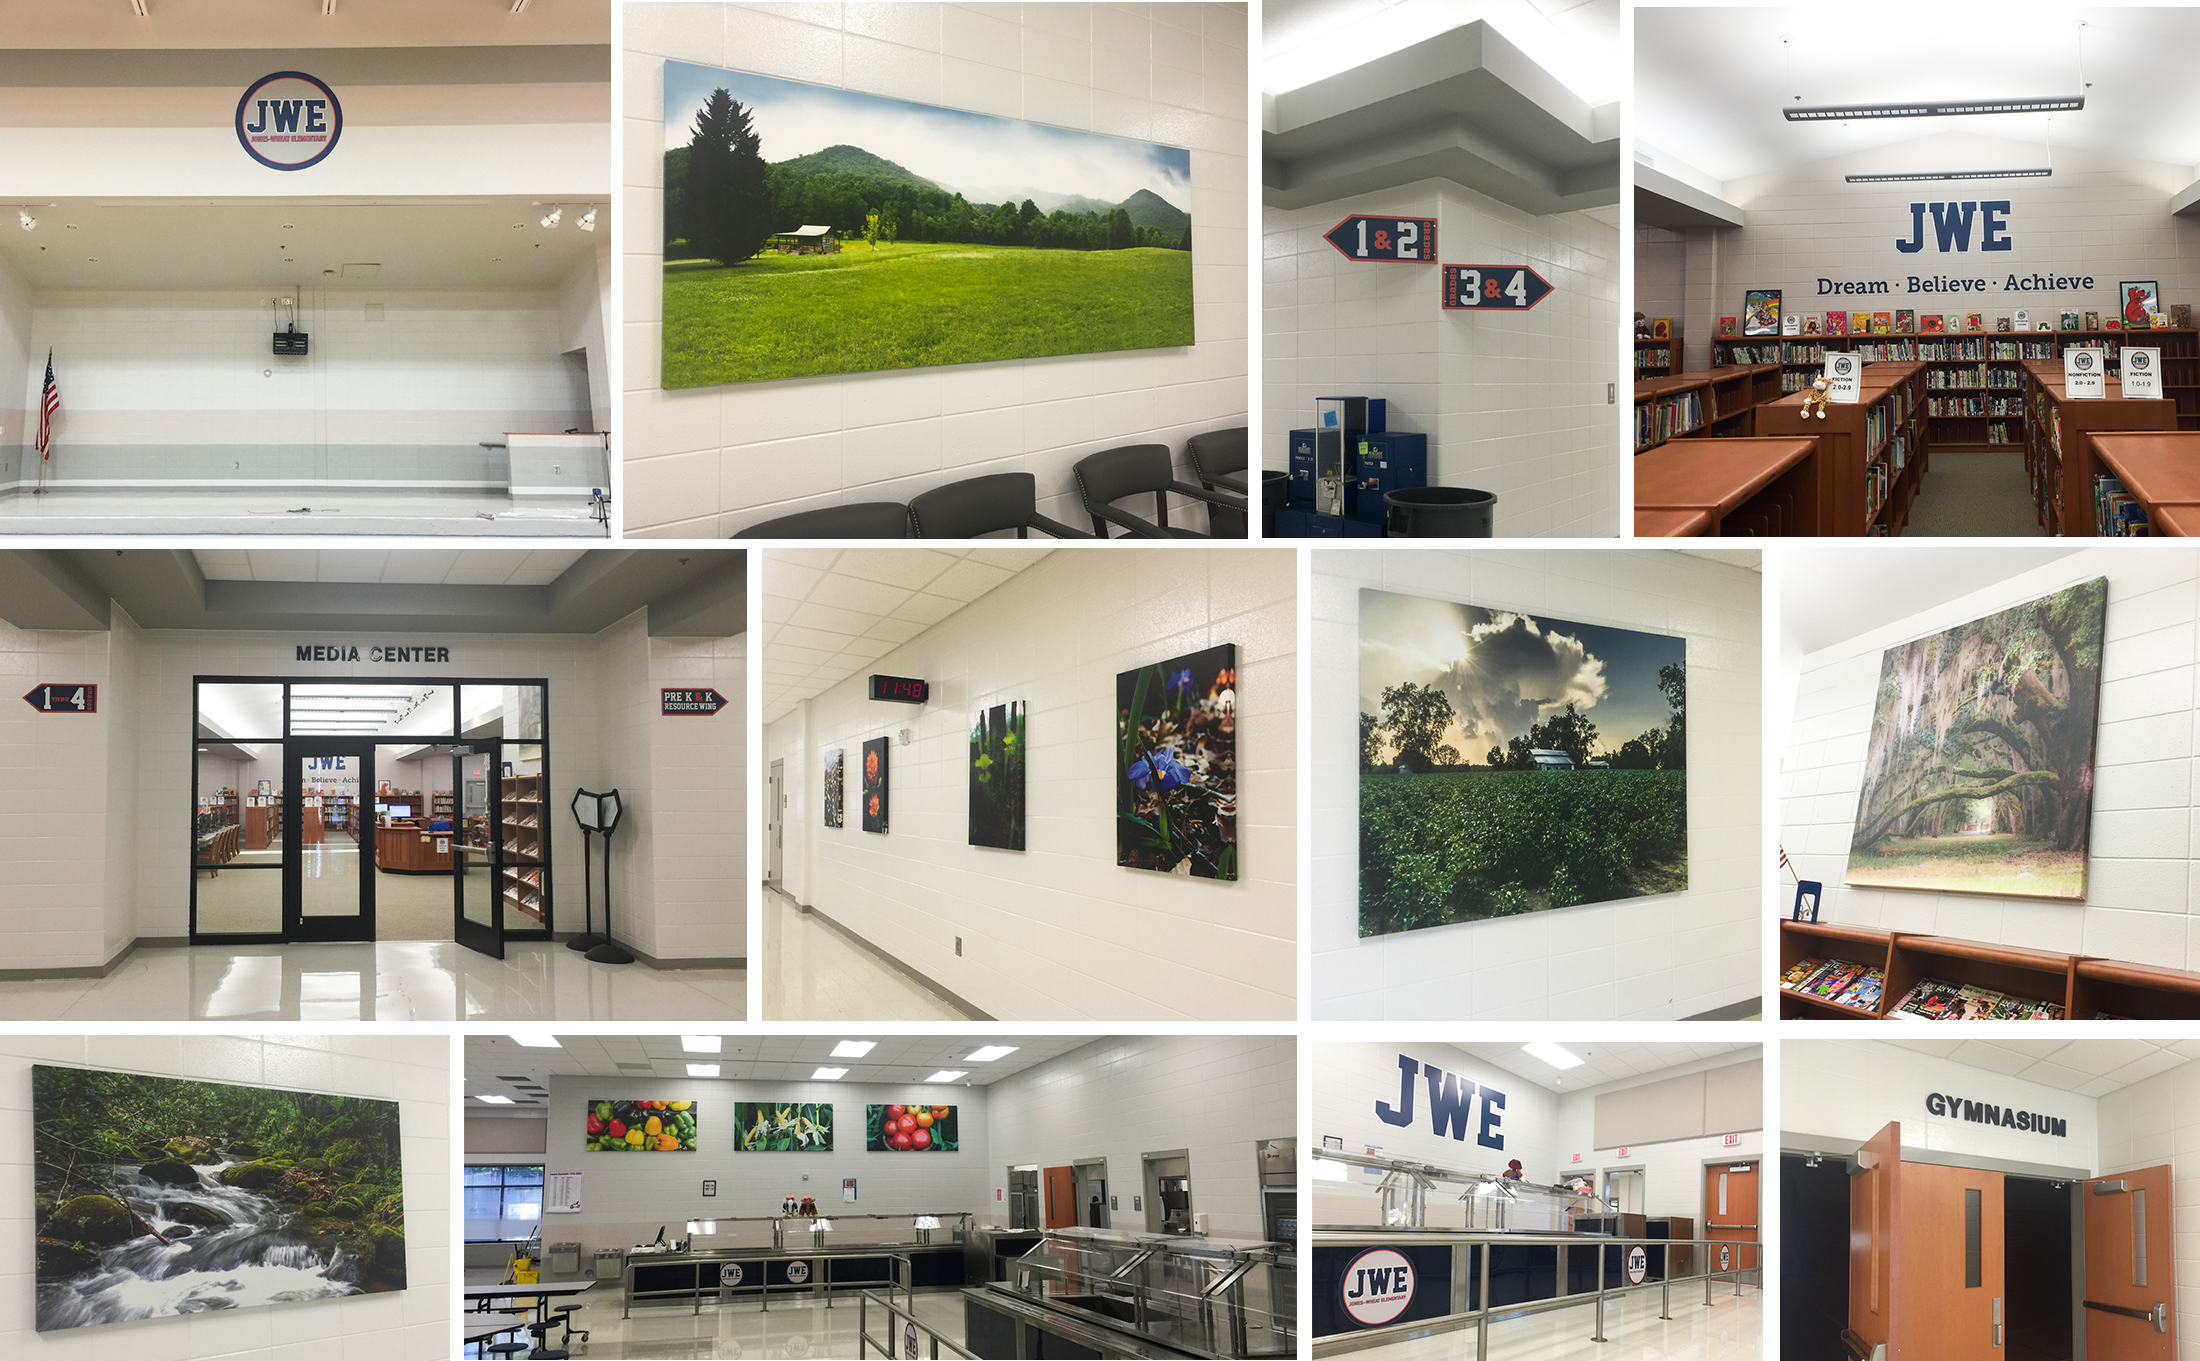 Jones-Wheat Elementary-Logo, Signage, Photography (3), Printing, Installation